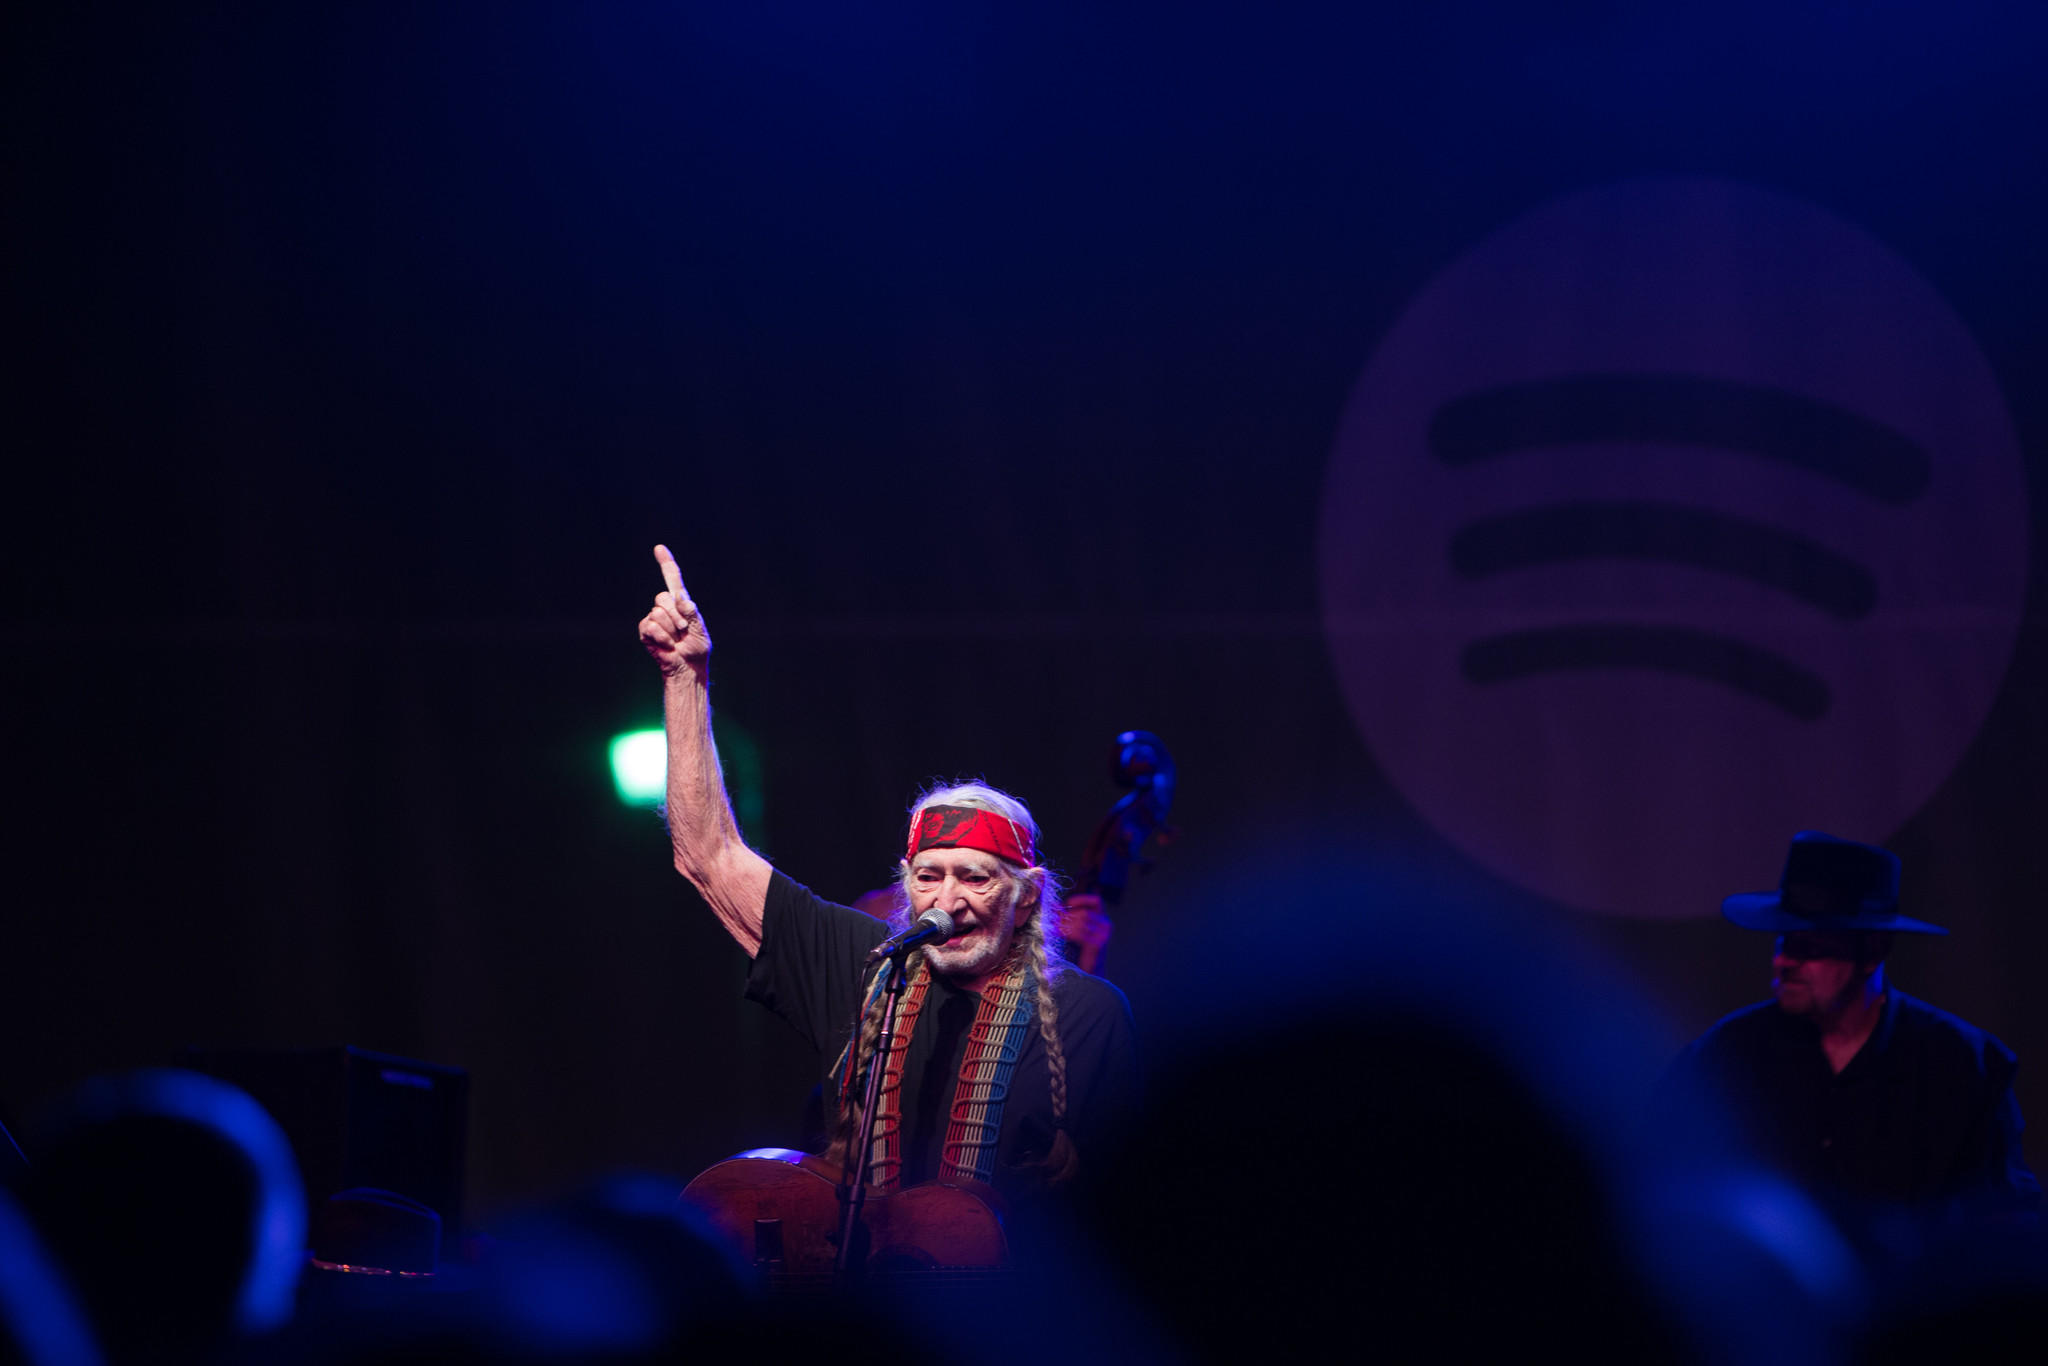 Willie Nelson performs at the Spotify House (Anna Webber / Getty Images)